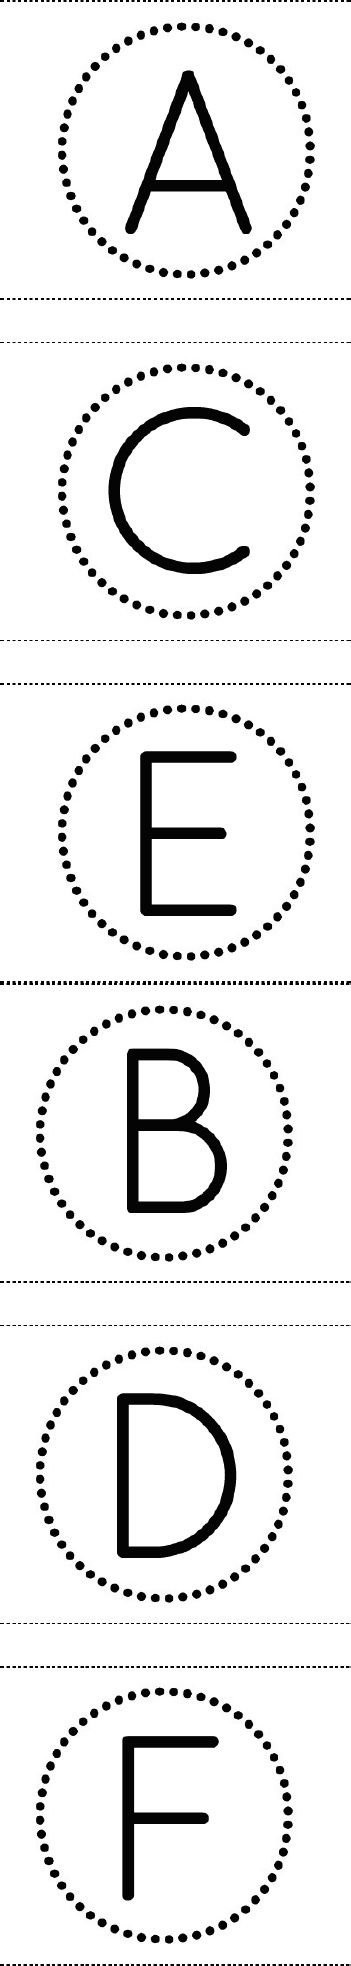 Free Printable Circle Banner Alphabet  For Making Birthday